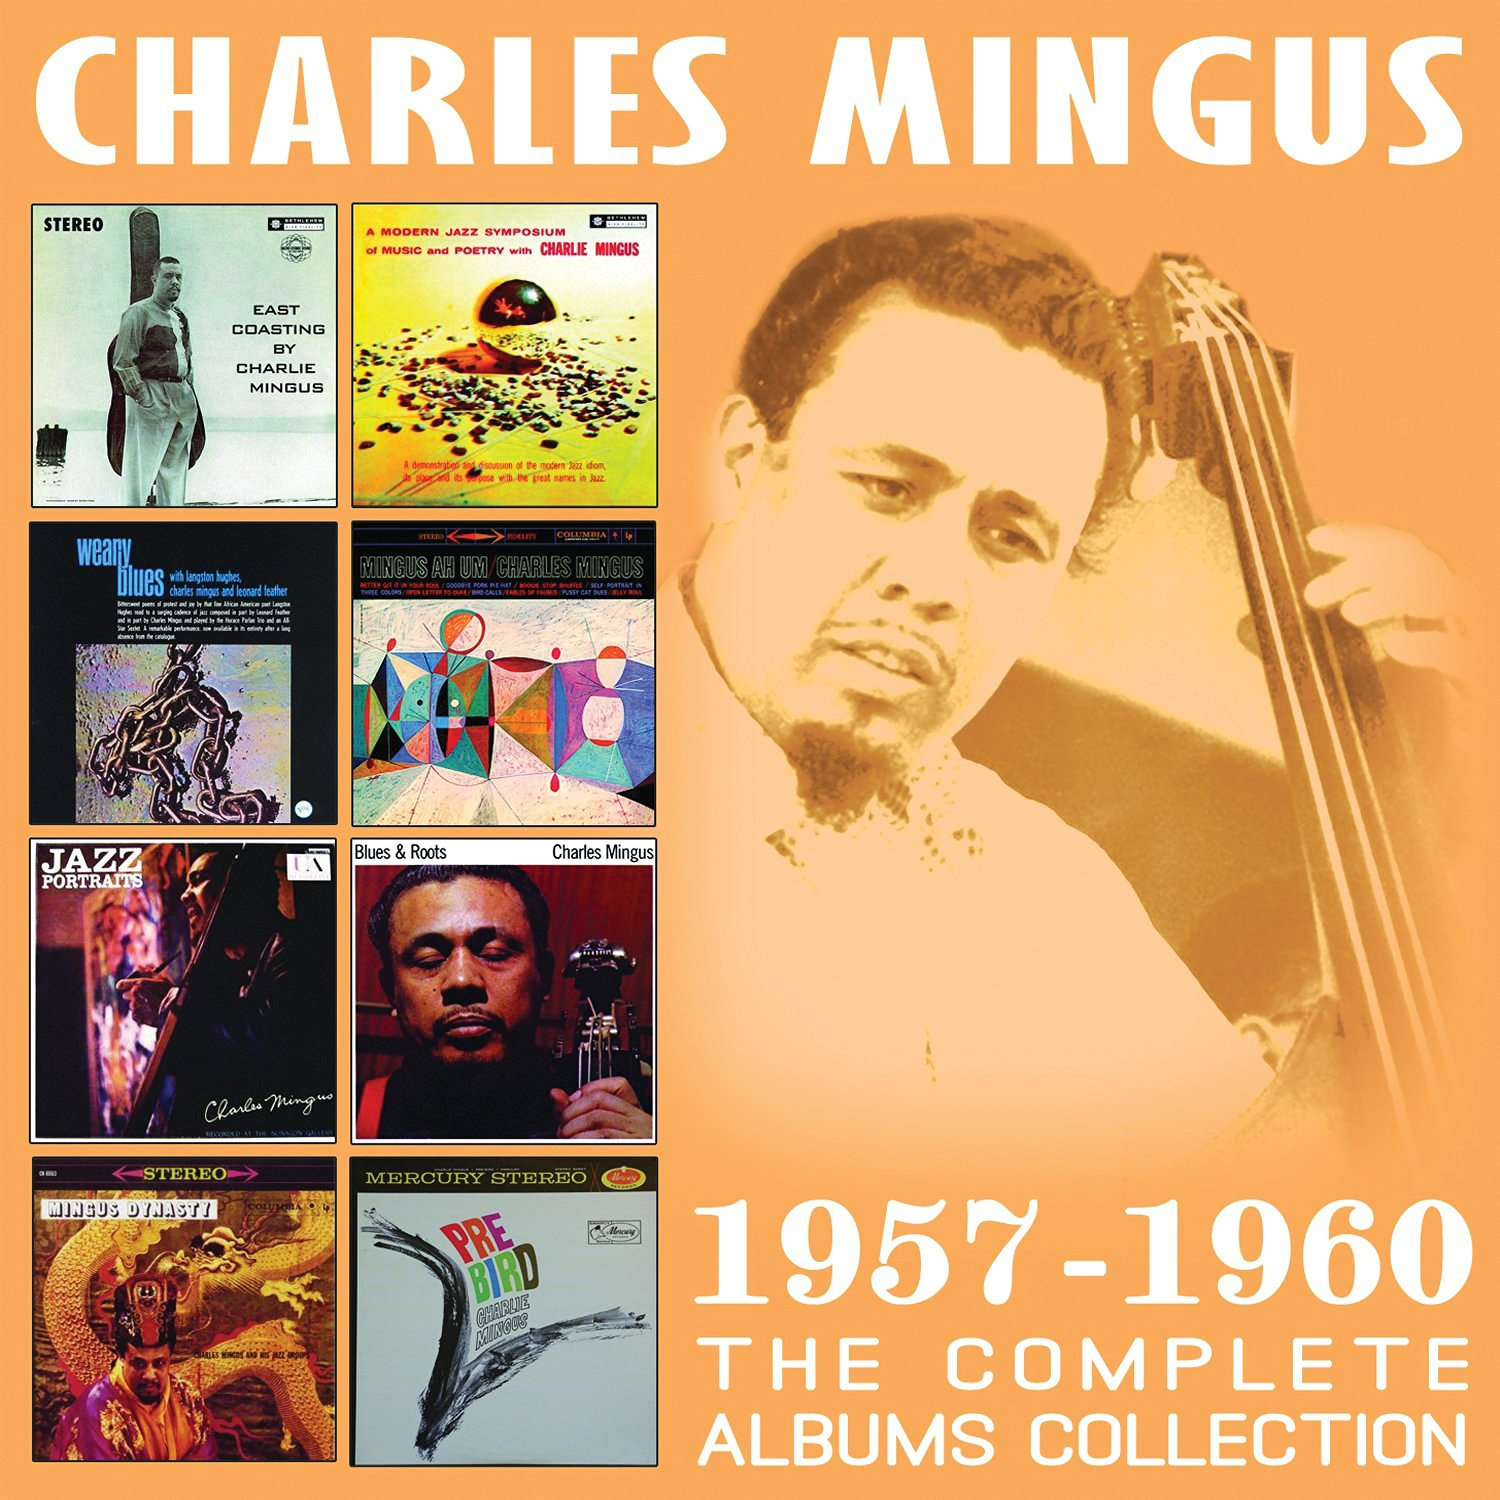 CHARLES MINGUS - The Complete Albums Collection 1957-1960 cover